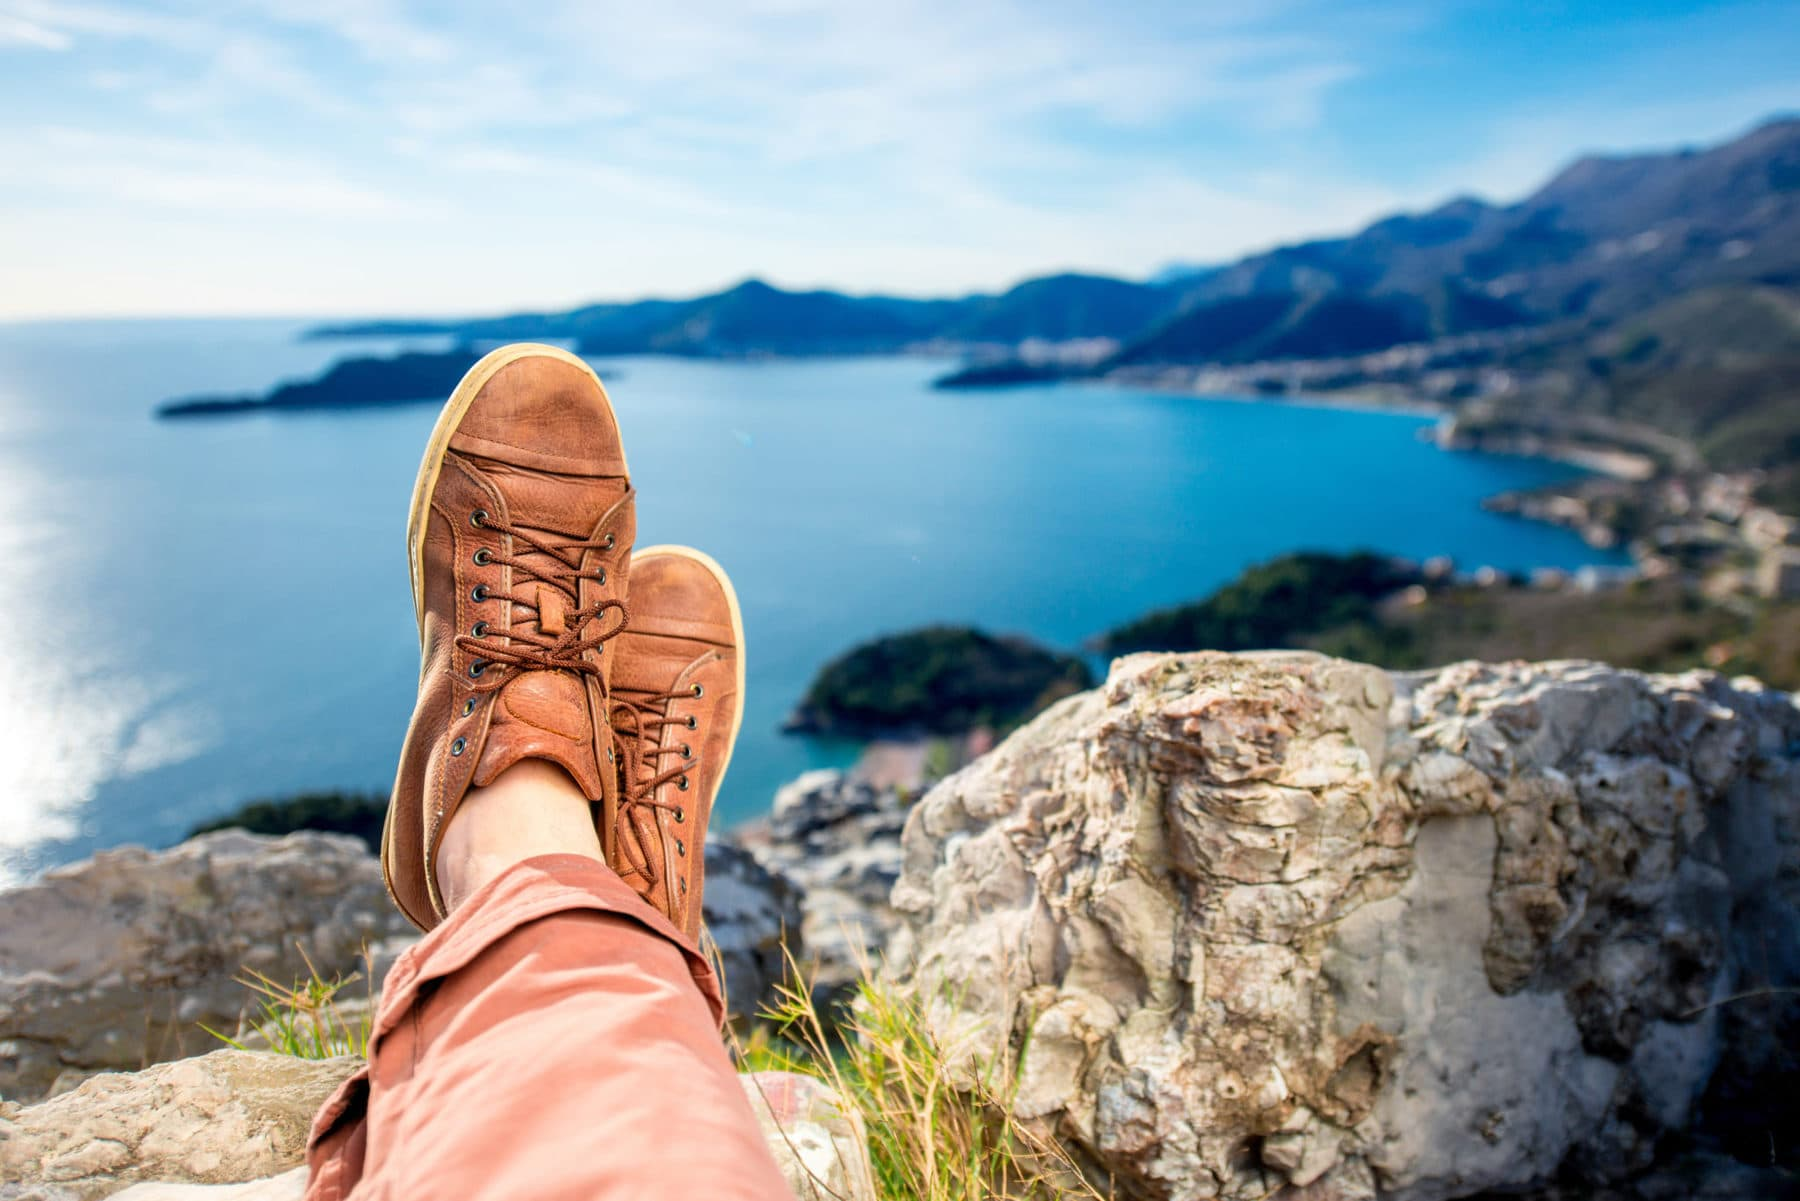 Men's legs in the brown shoes lying on the mountain on the sea scape background